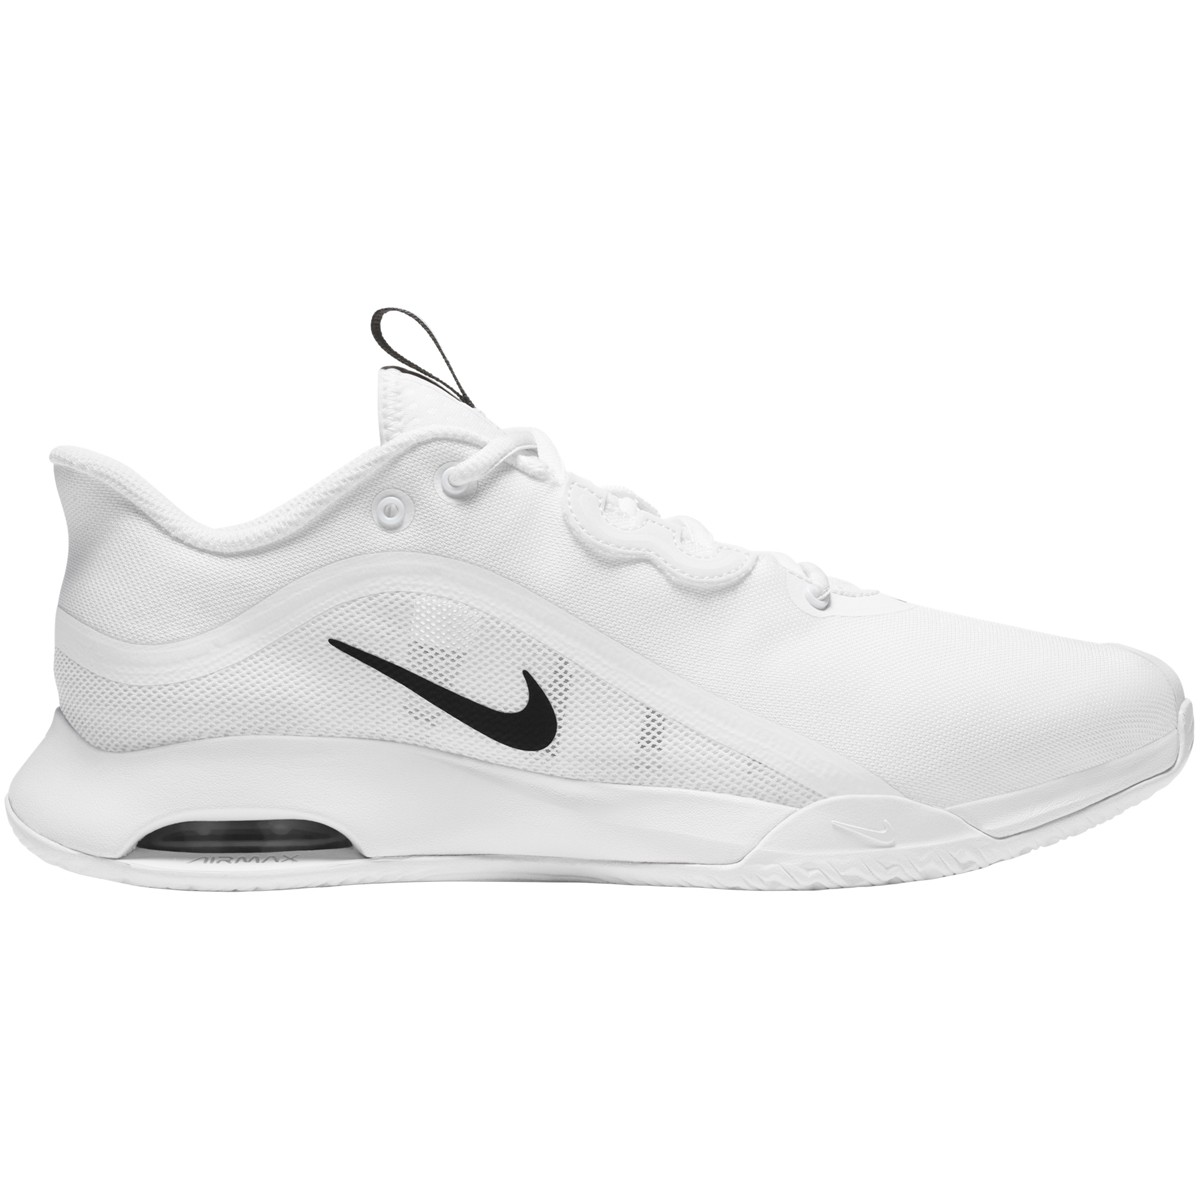 NIKE AIR MAX VOLLEY ALL COURT SHOES - NIKE - Men's - Shoes   Tennispro